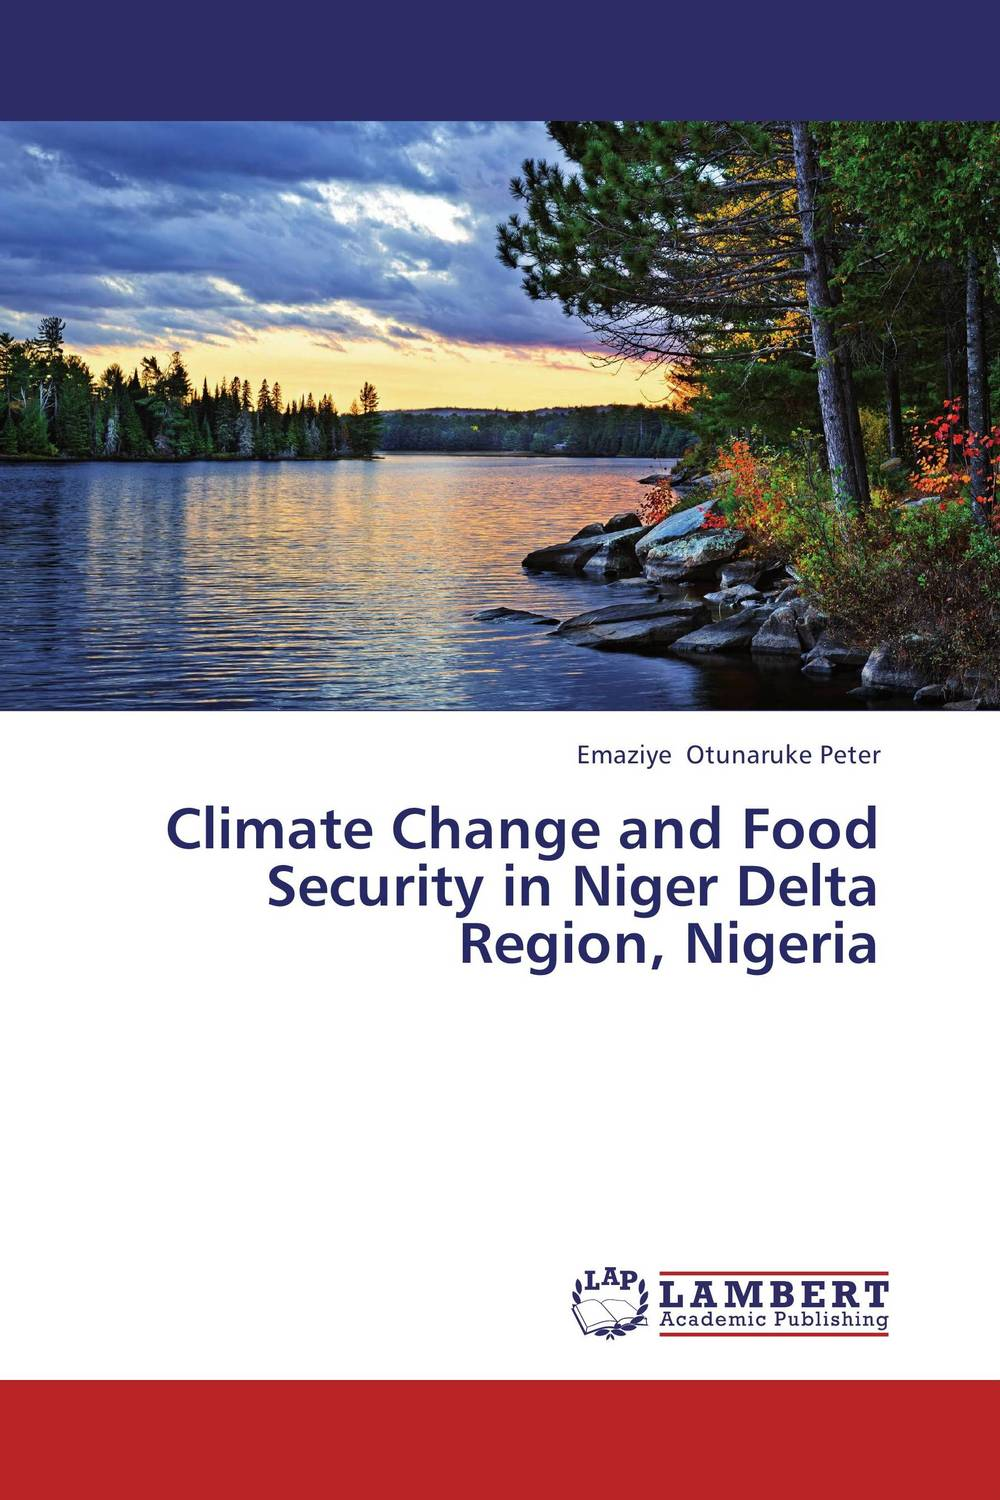 Climate Change and Food Security in Niger Delta Region, Nigeria atsuko asano no 6 volume 5